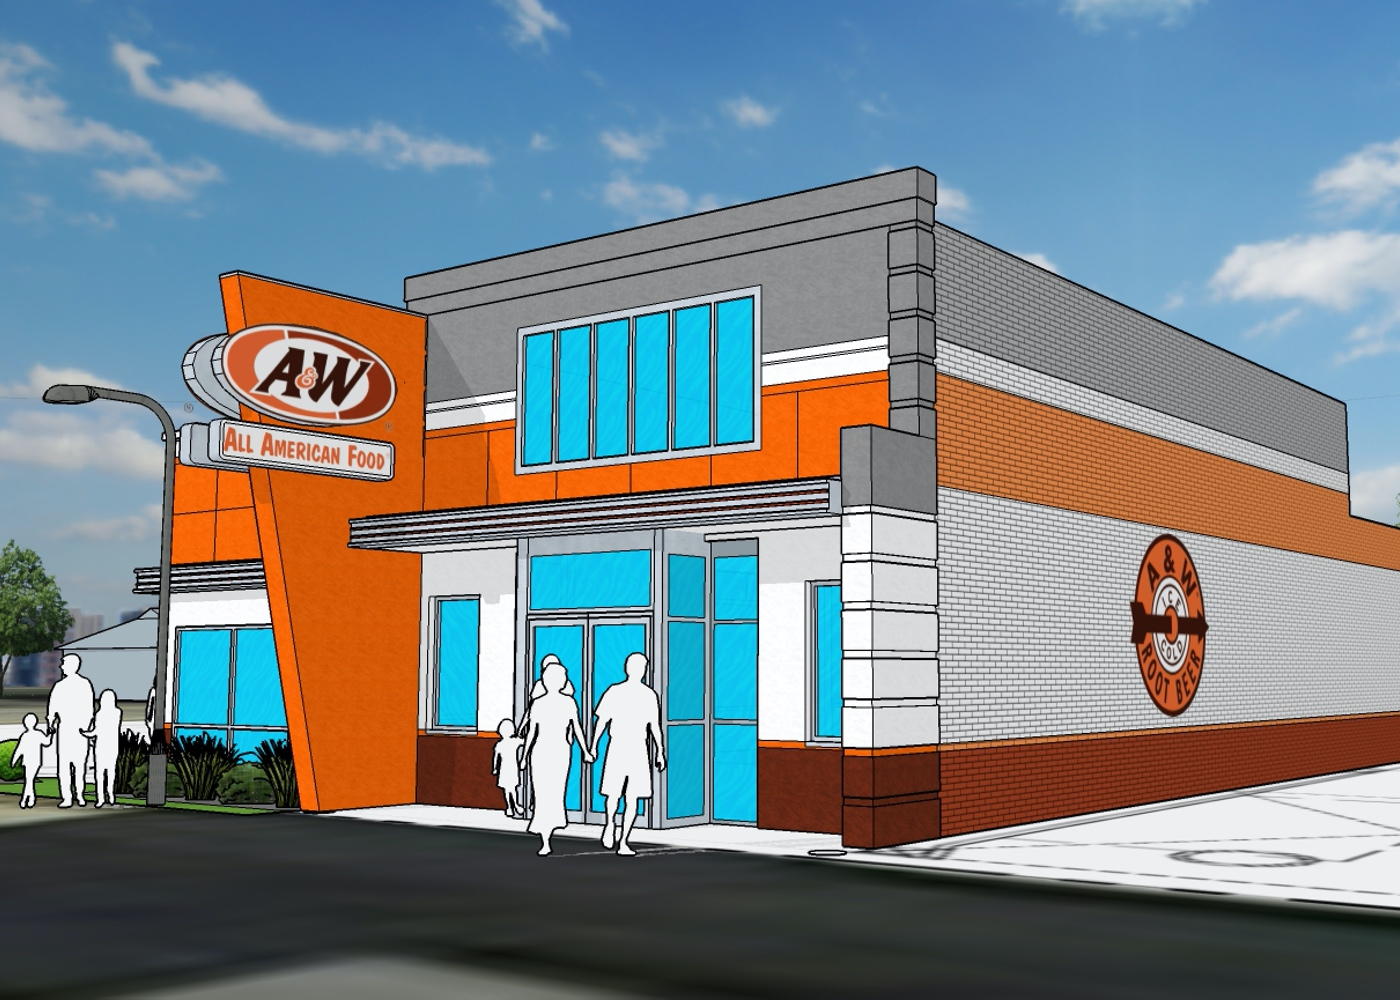 Rendering of A&W Restaurant building exterior